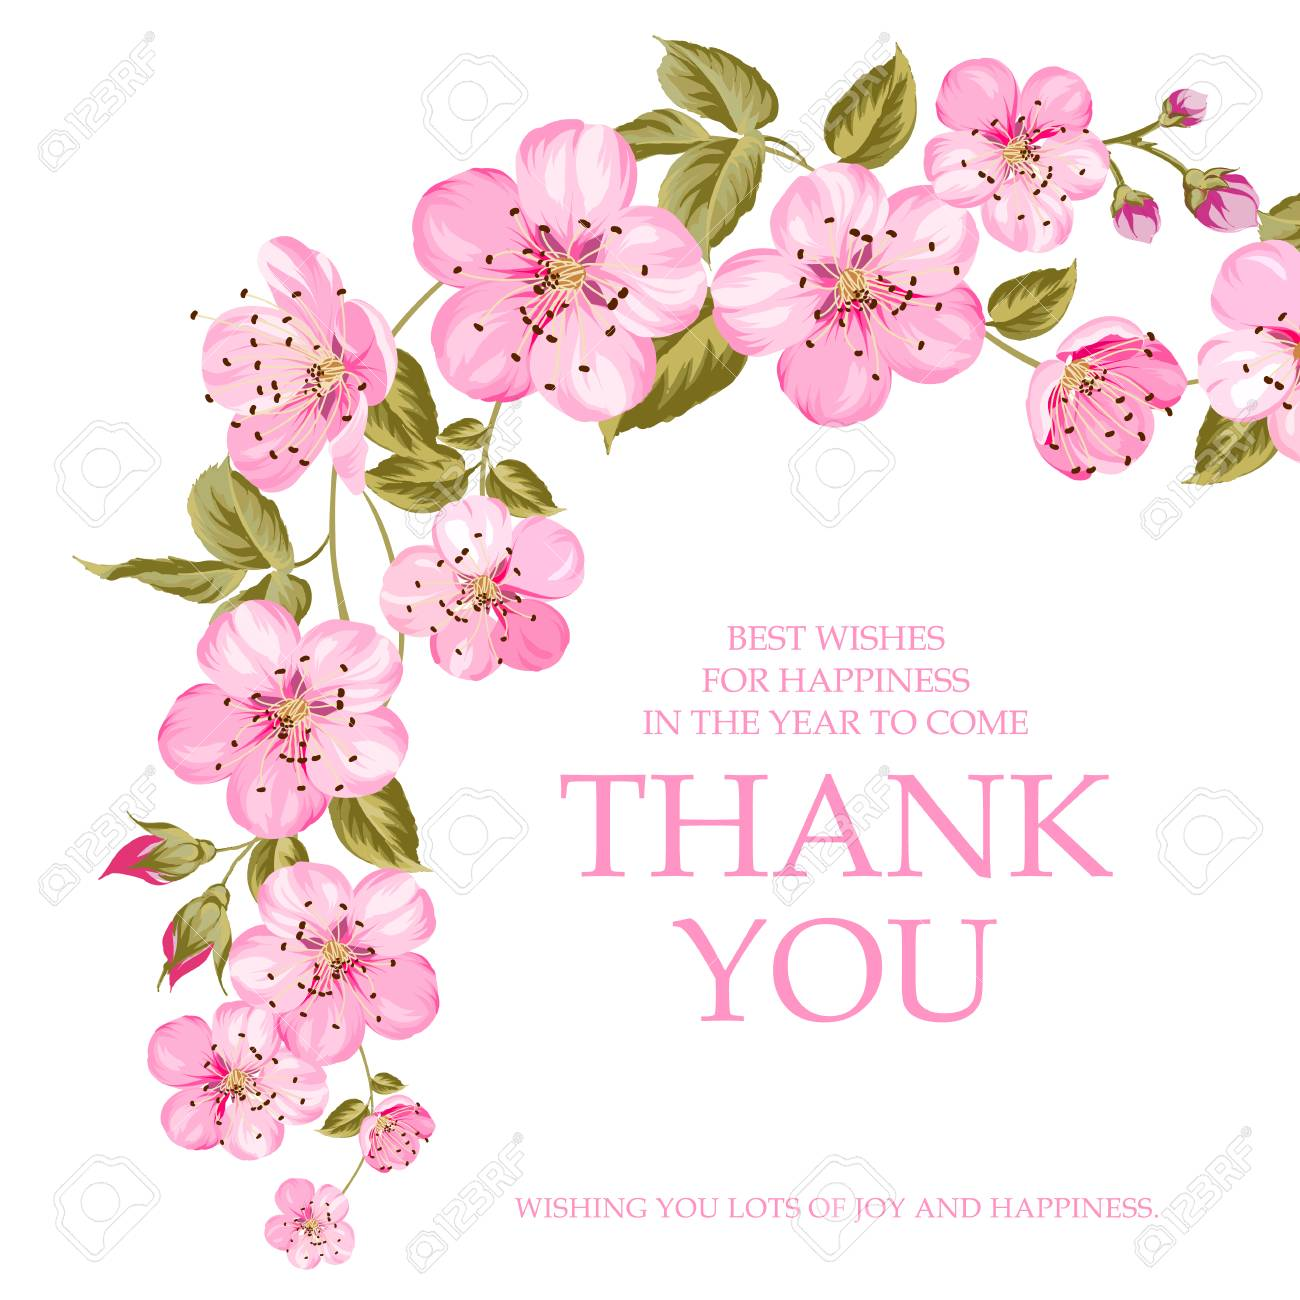 Invitation text card with thank you sign pink flowers garland invitation text card with thank you sign pink flowers garland at the top of holiday mightylinksfo